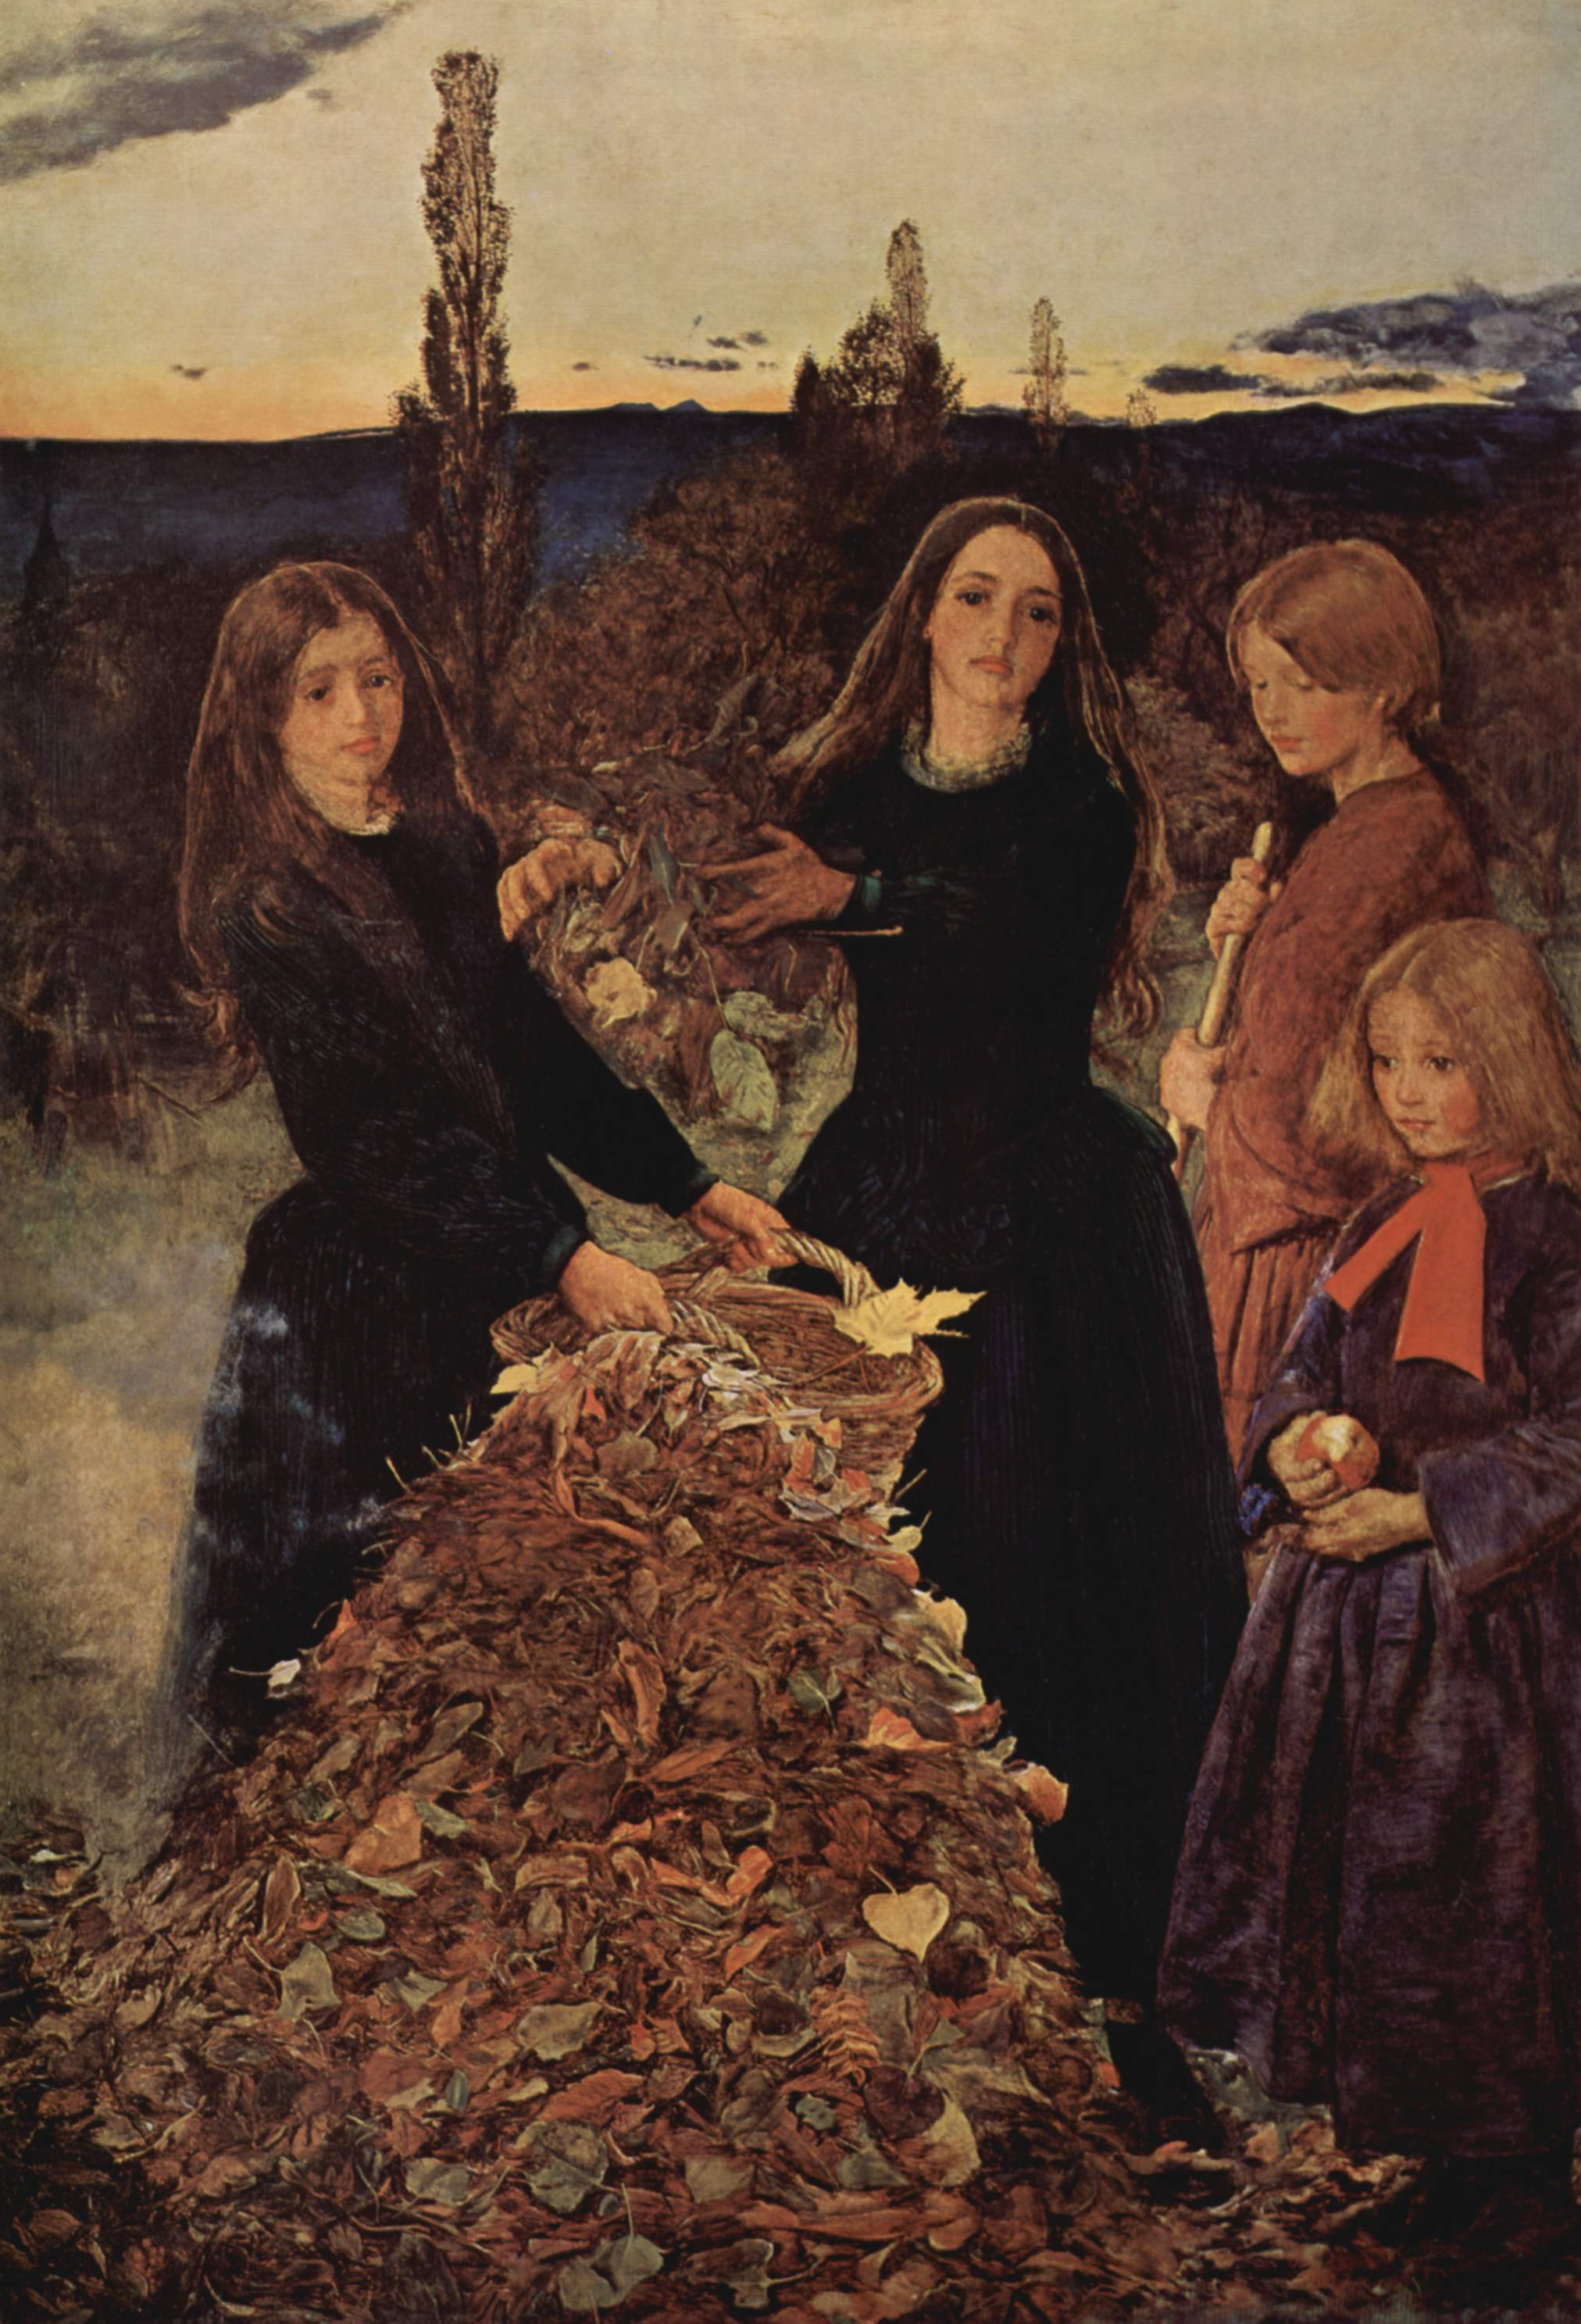 Pittura Preraffaellita Inglese Autumn Leaves Opera Di John Everett Millais